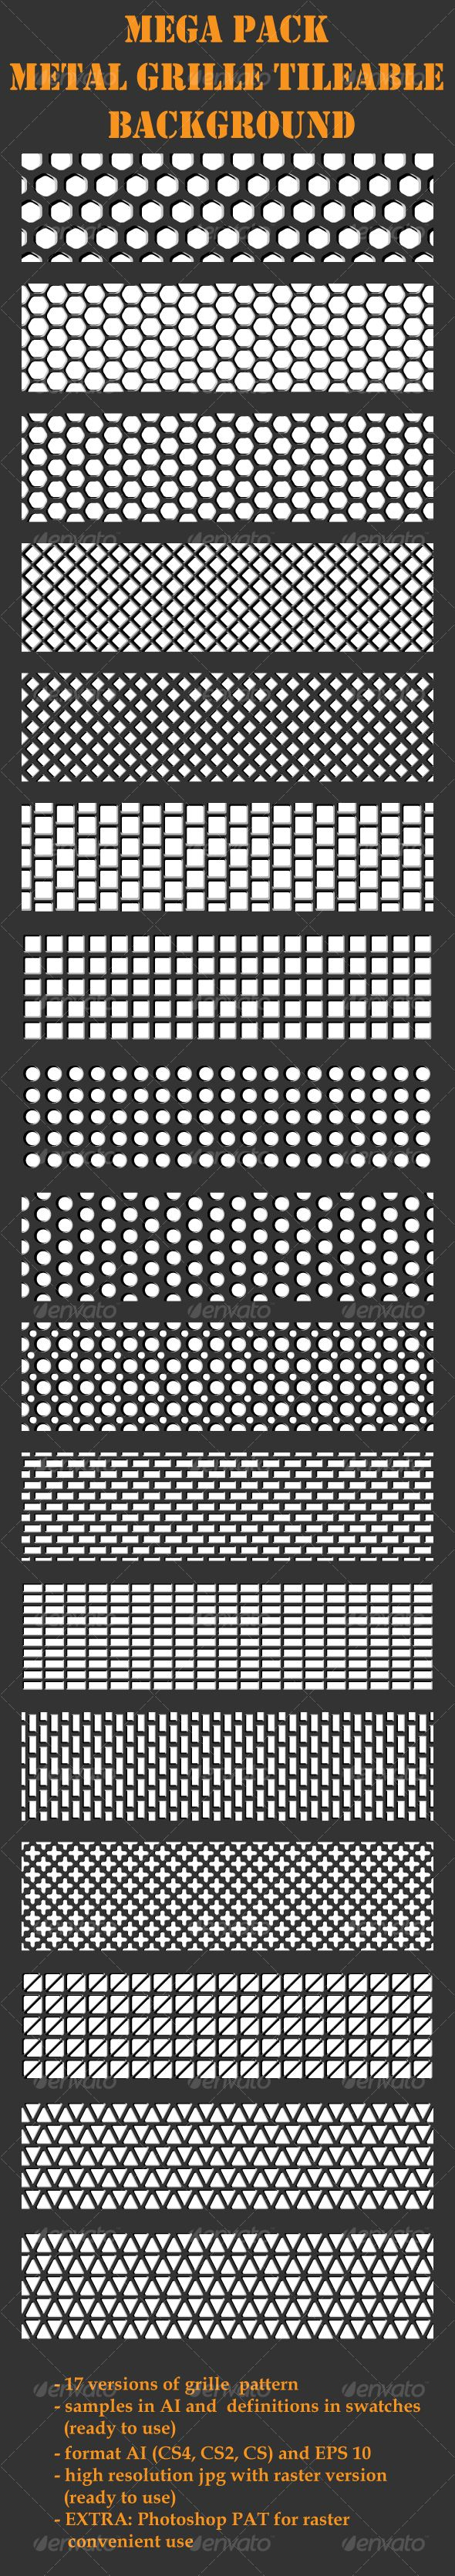 Grille Metal Backgrounds  Mega Pack  17 patterns — AI Illustrator #regular #grille • Available here → https://graphicriver.net/item/grille-metal-backgrounds-mega-pack-17-patterns/96701?ref=pxcr